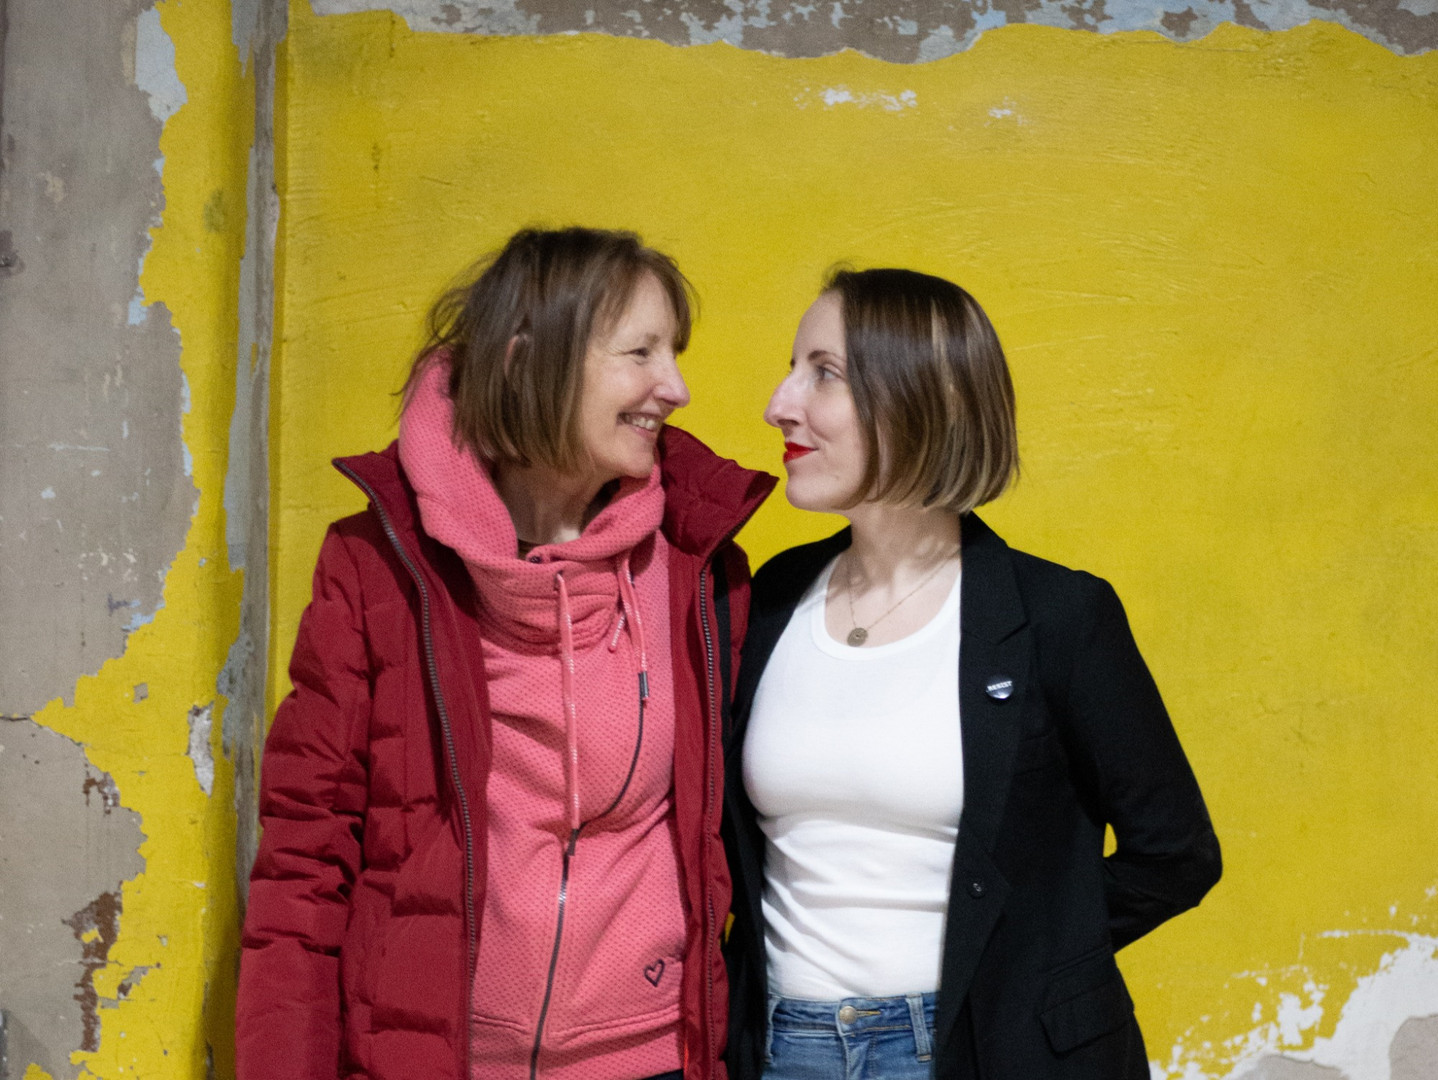 A moment with mom - Artist Lea Wülferth with her art historian mother